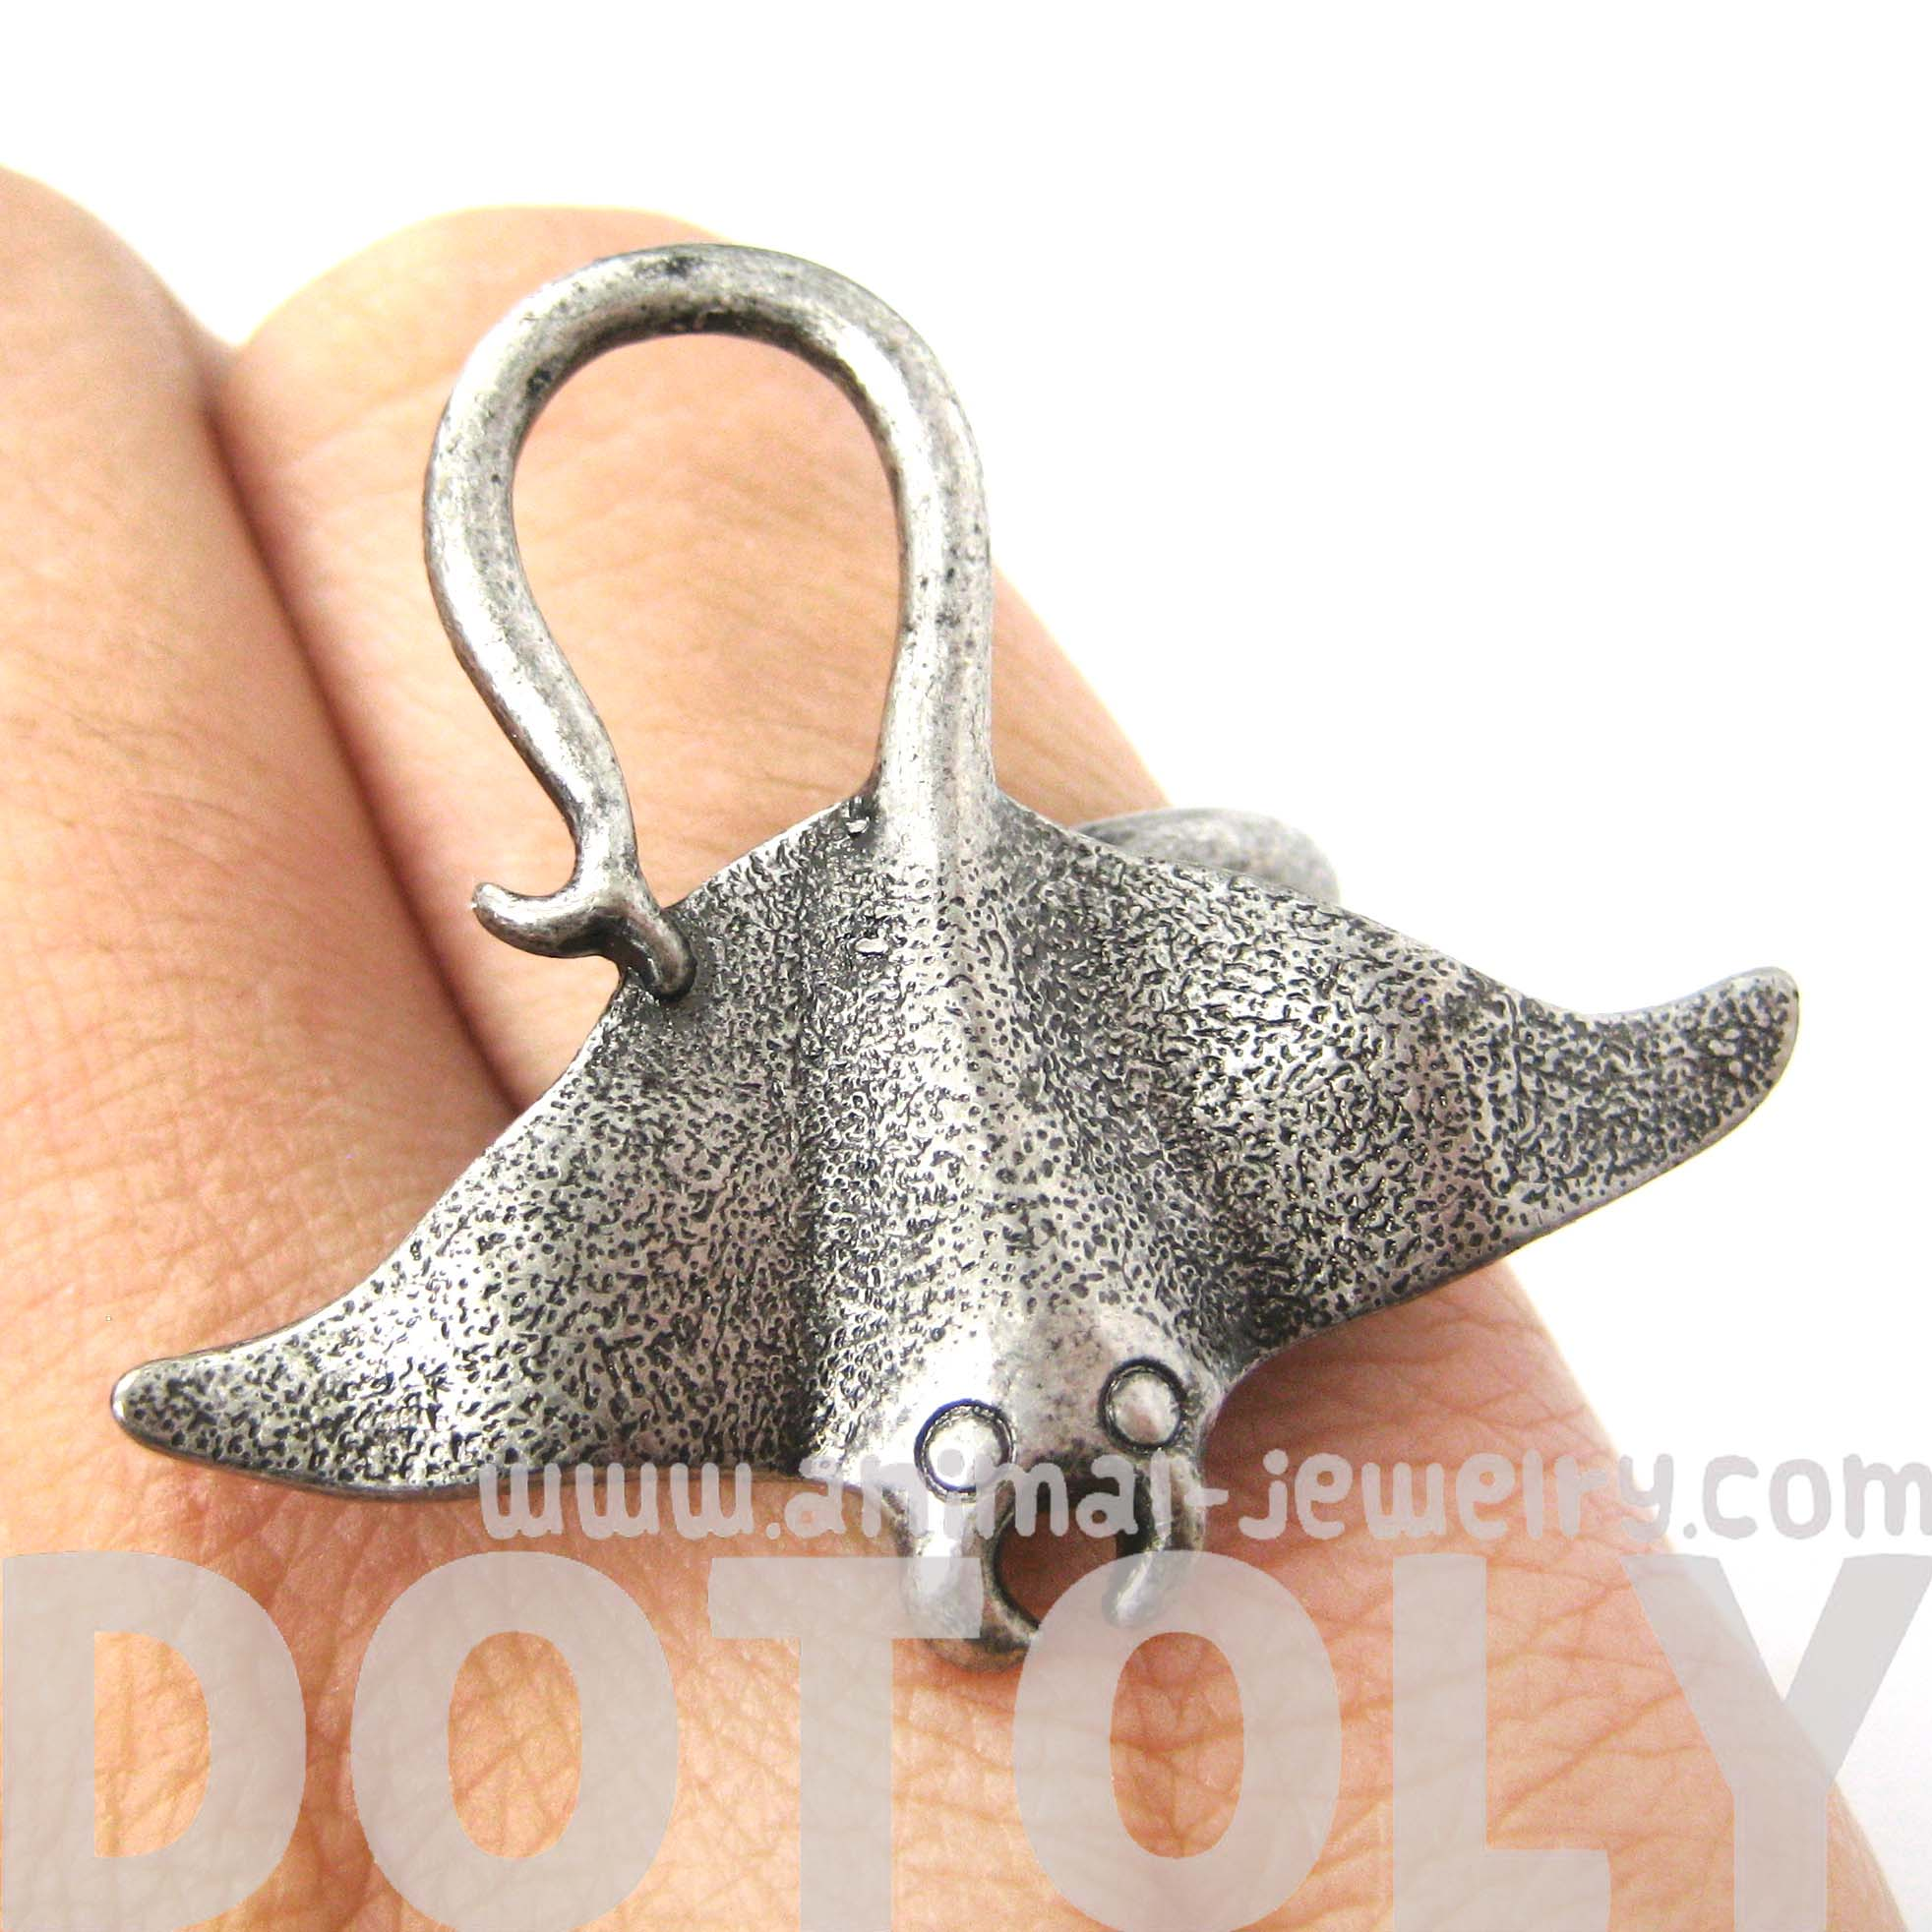 sting-ray-adjustable-animal-ring-in-silver-animal-jewelry